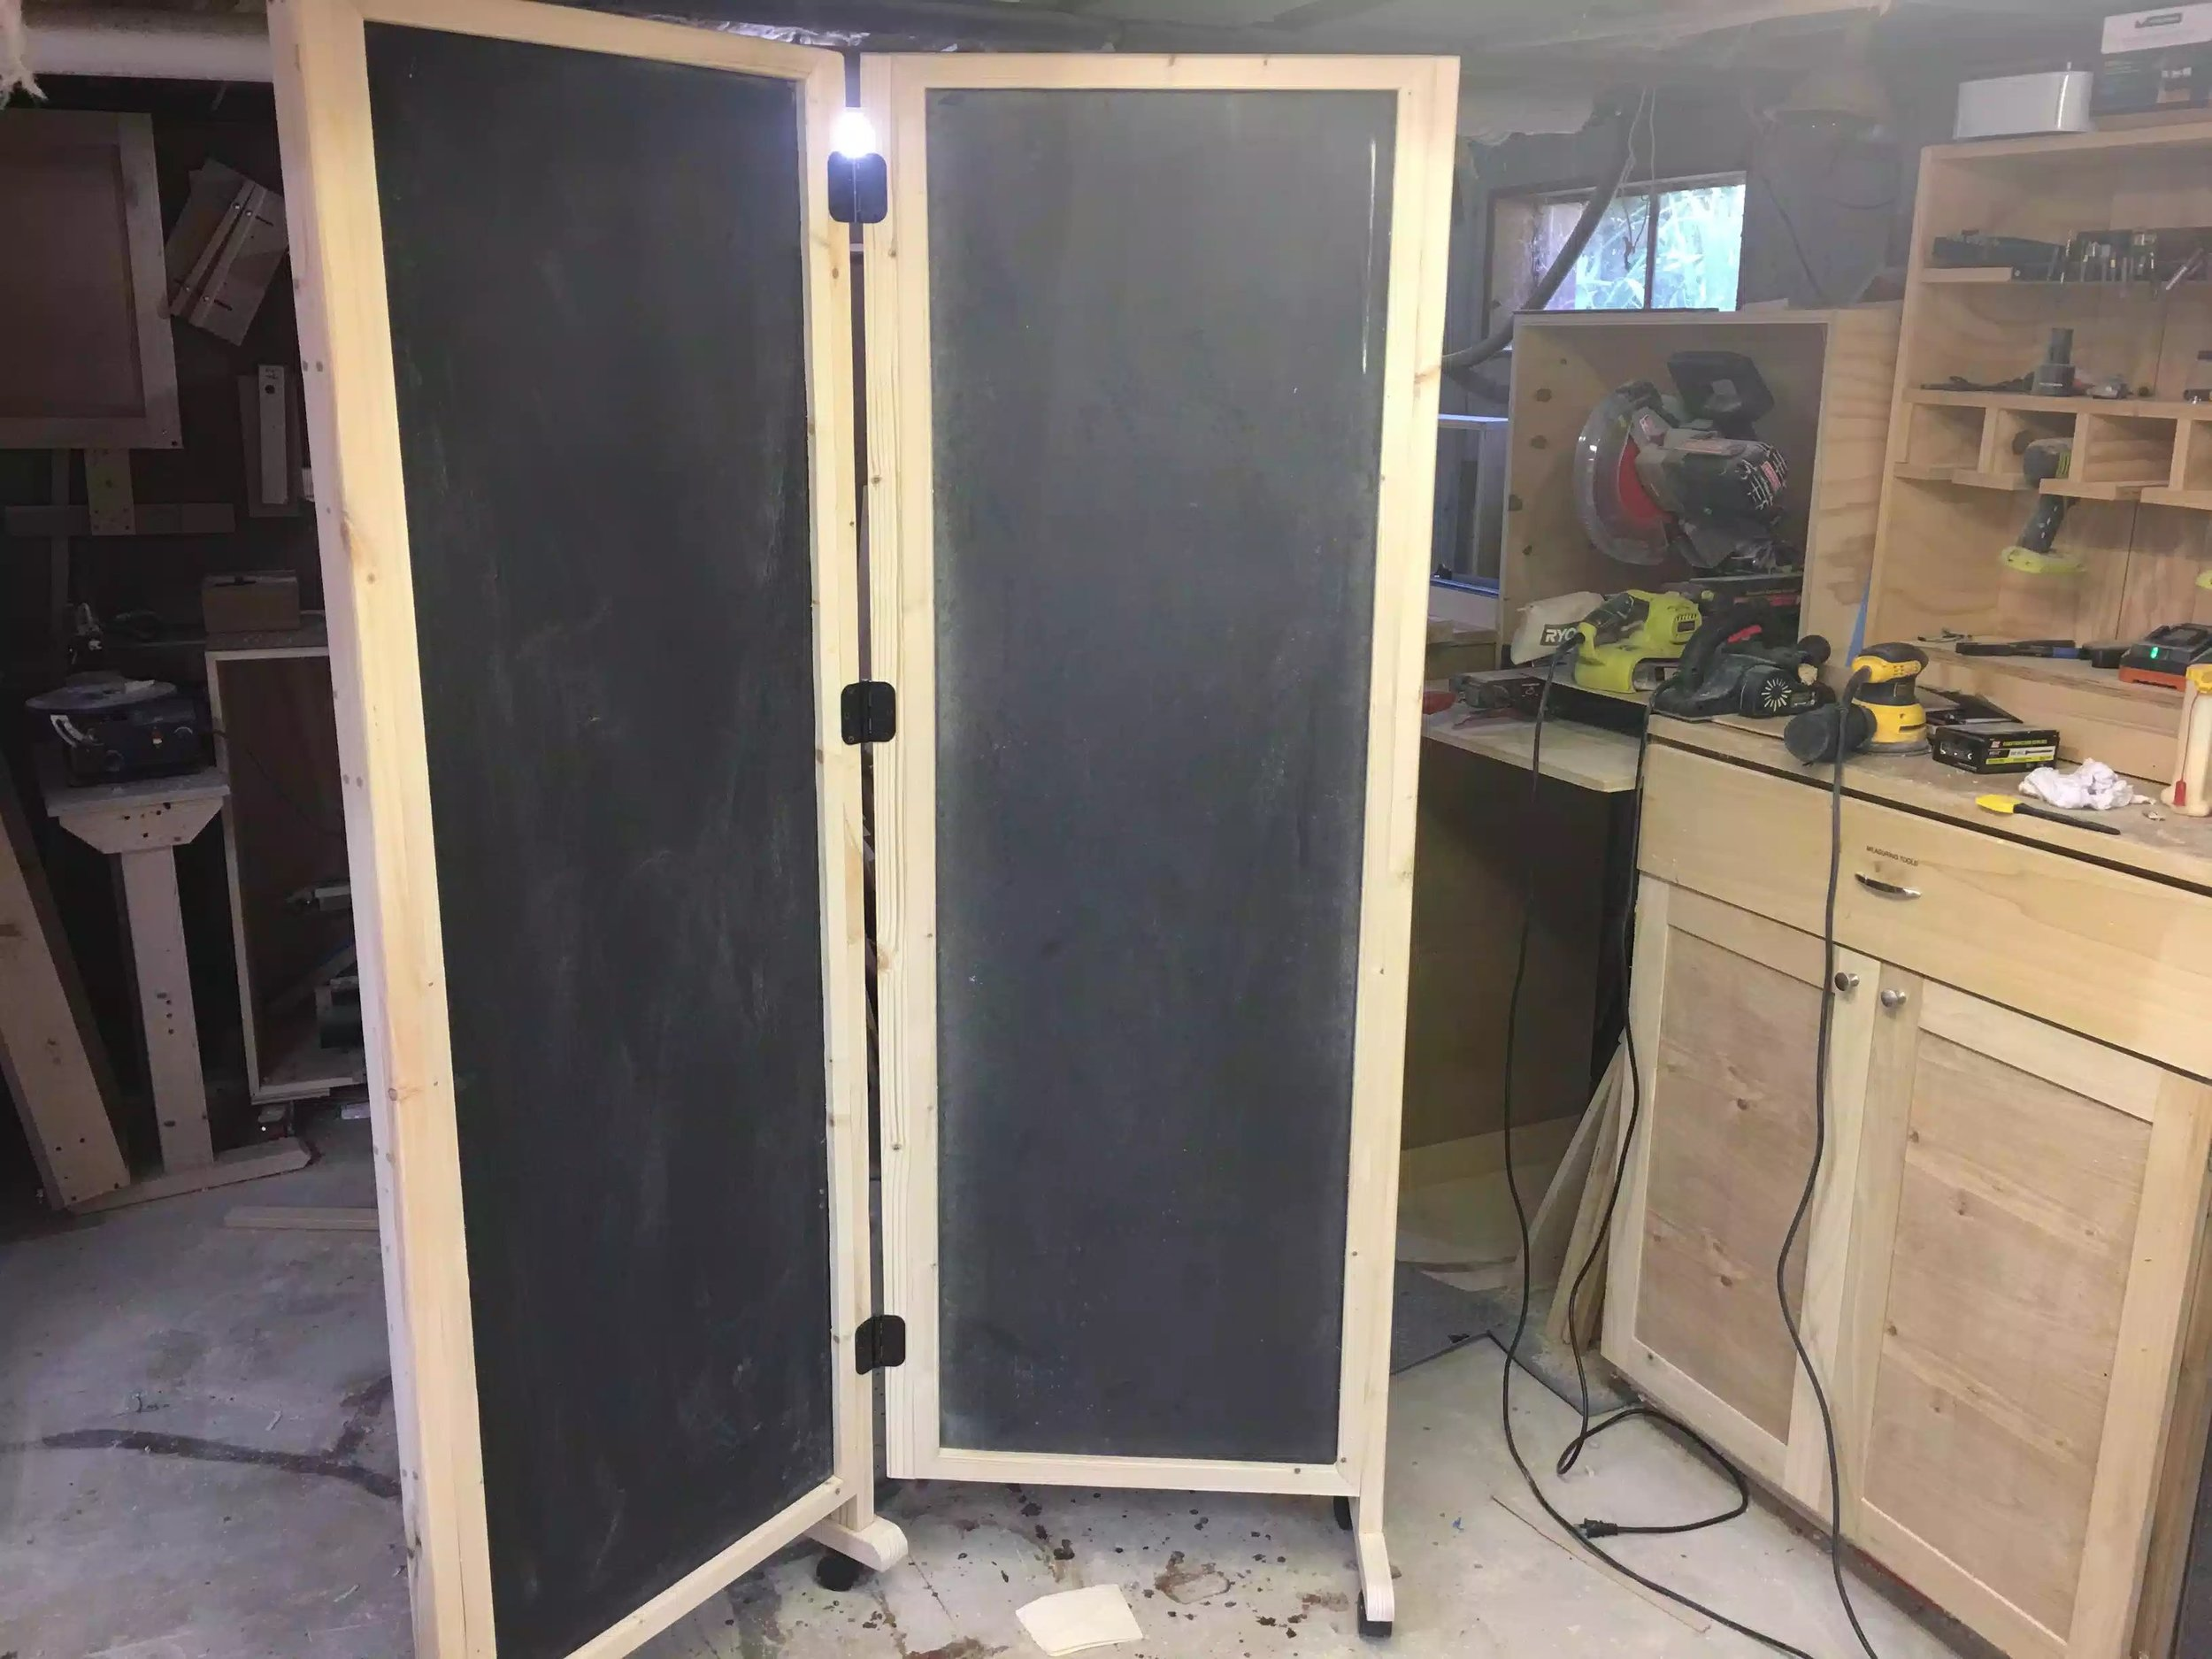 Free standing unit that can pivot, not bad looking